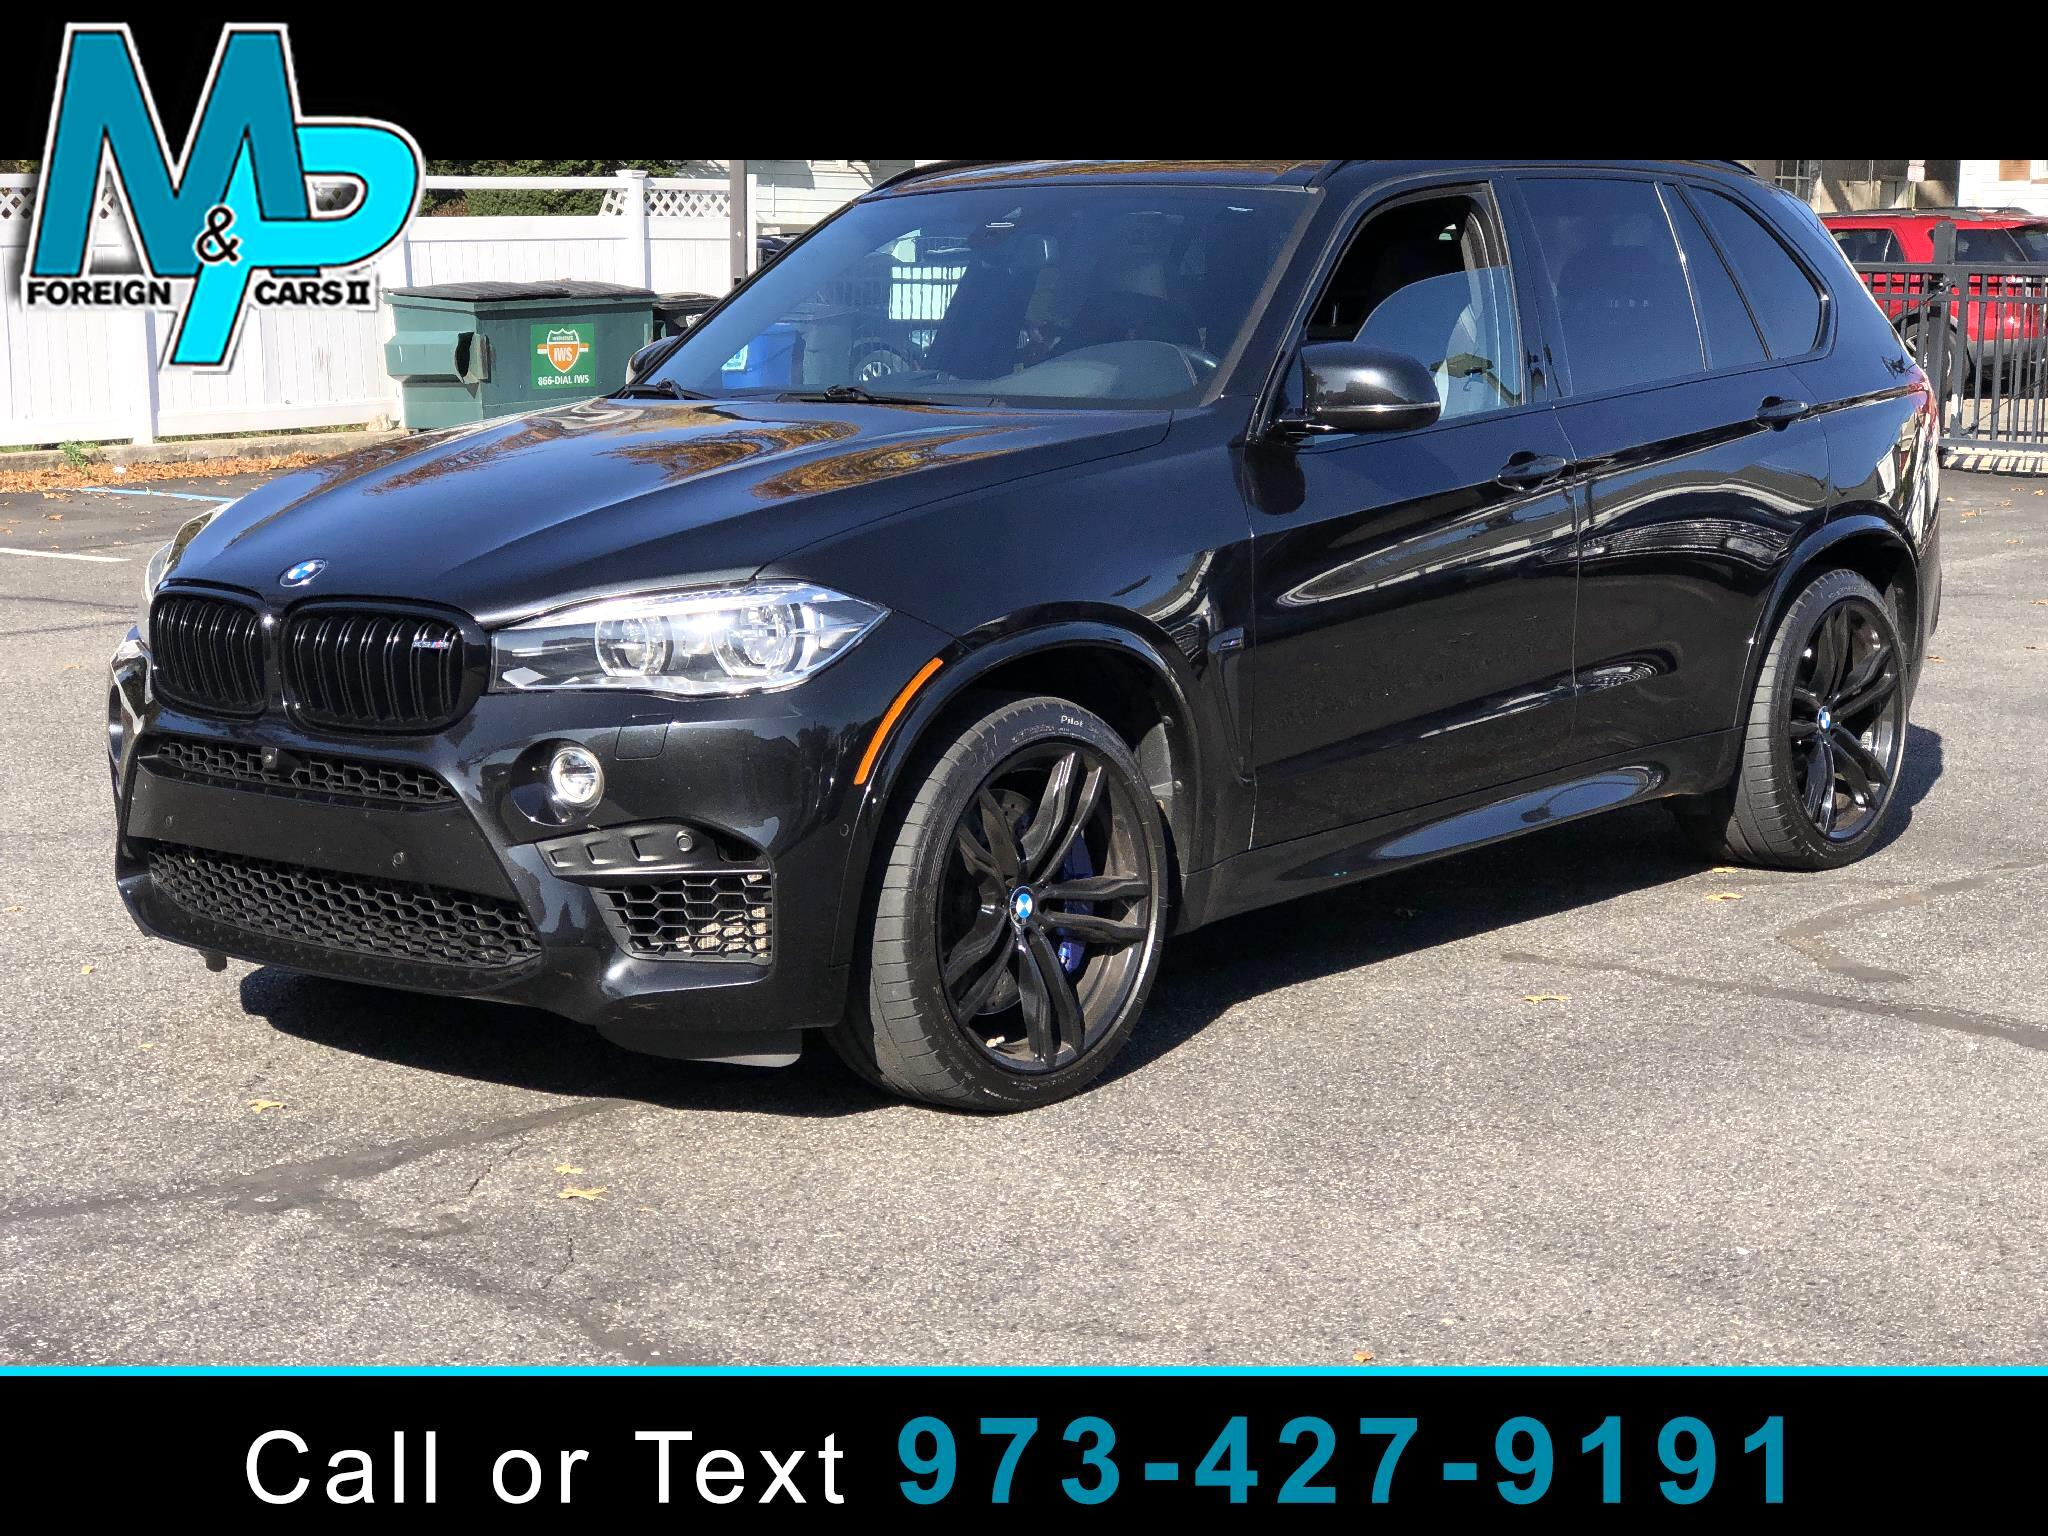 BMW X5 M Sports Activity Vehicle 2018